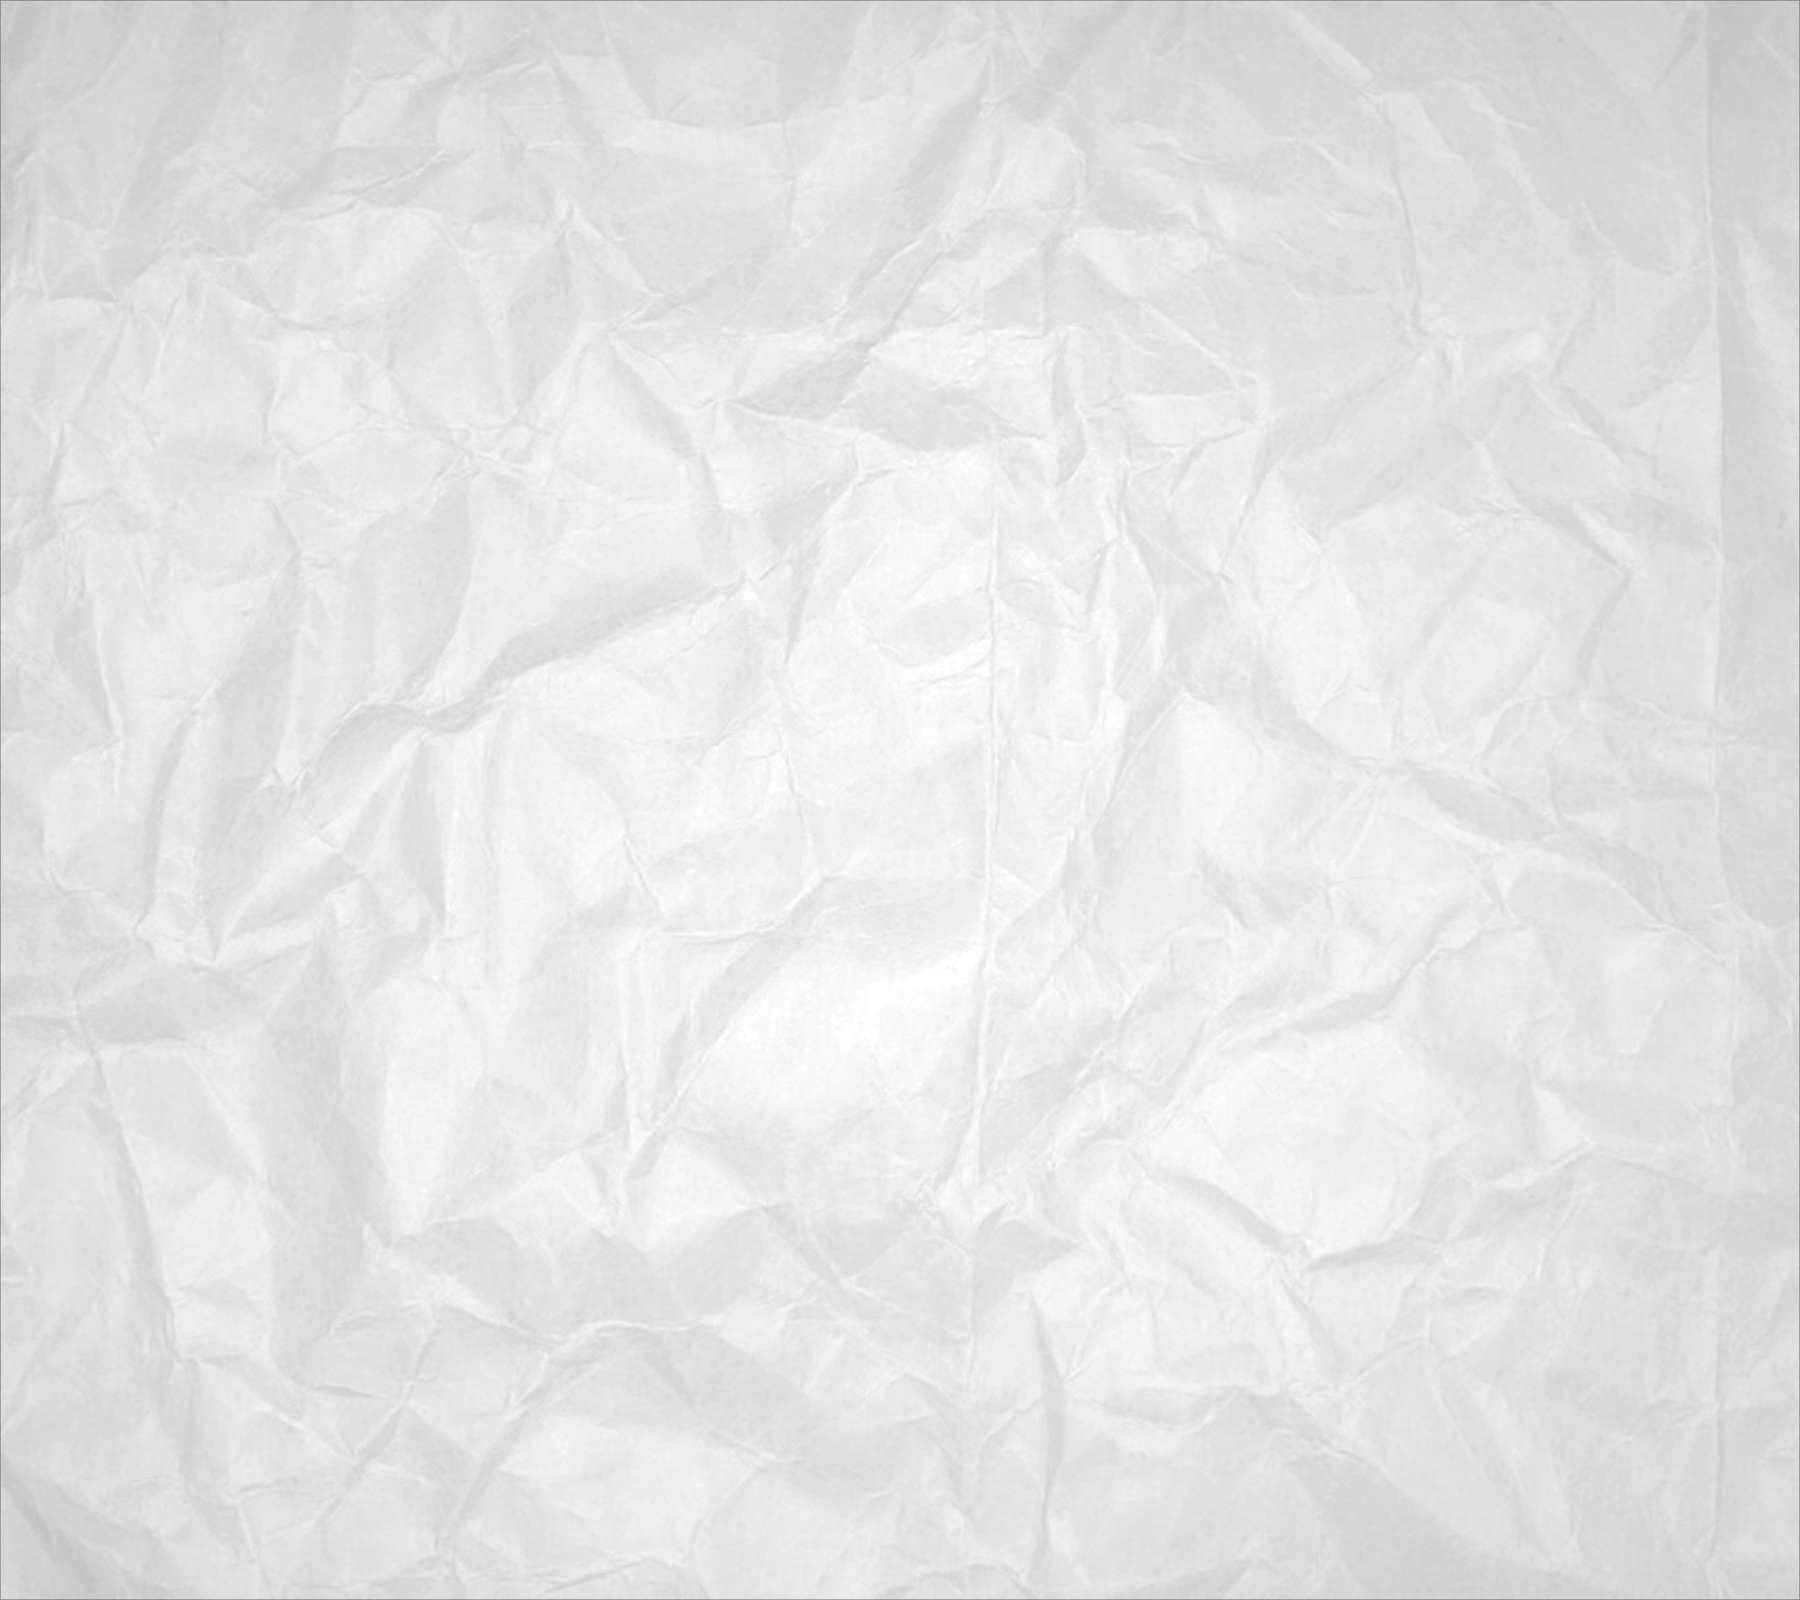 Wrinkled White Paper Background